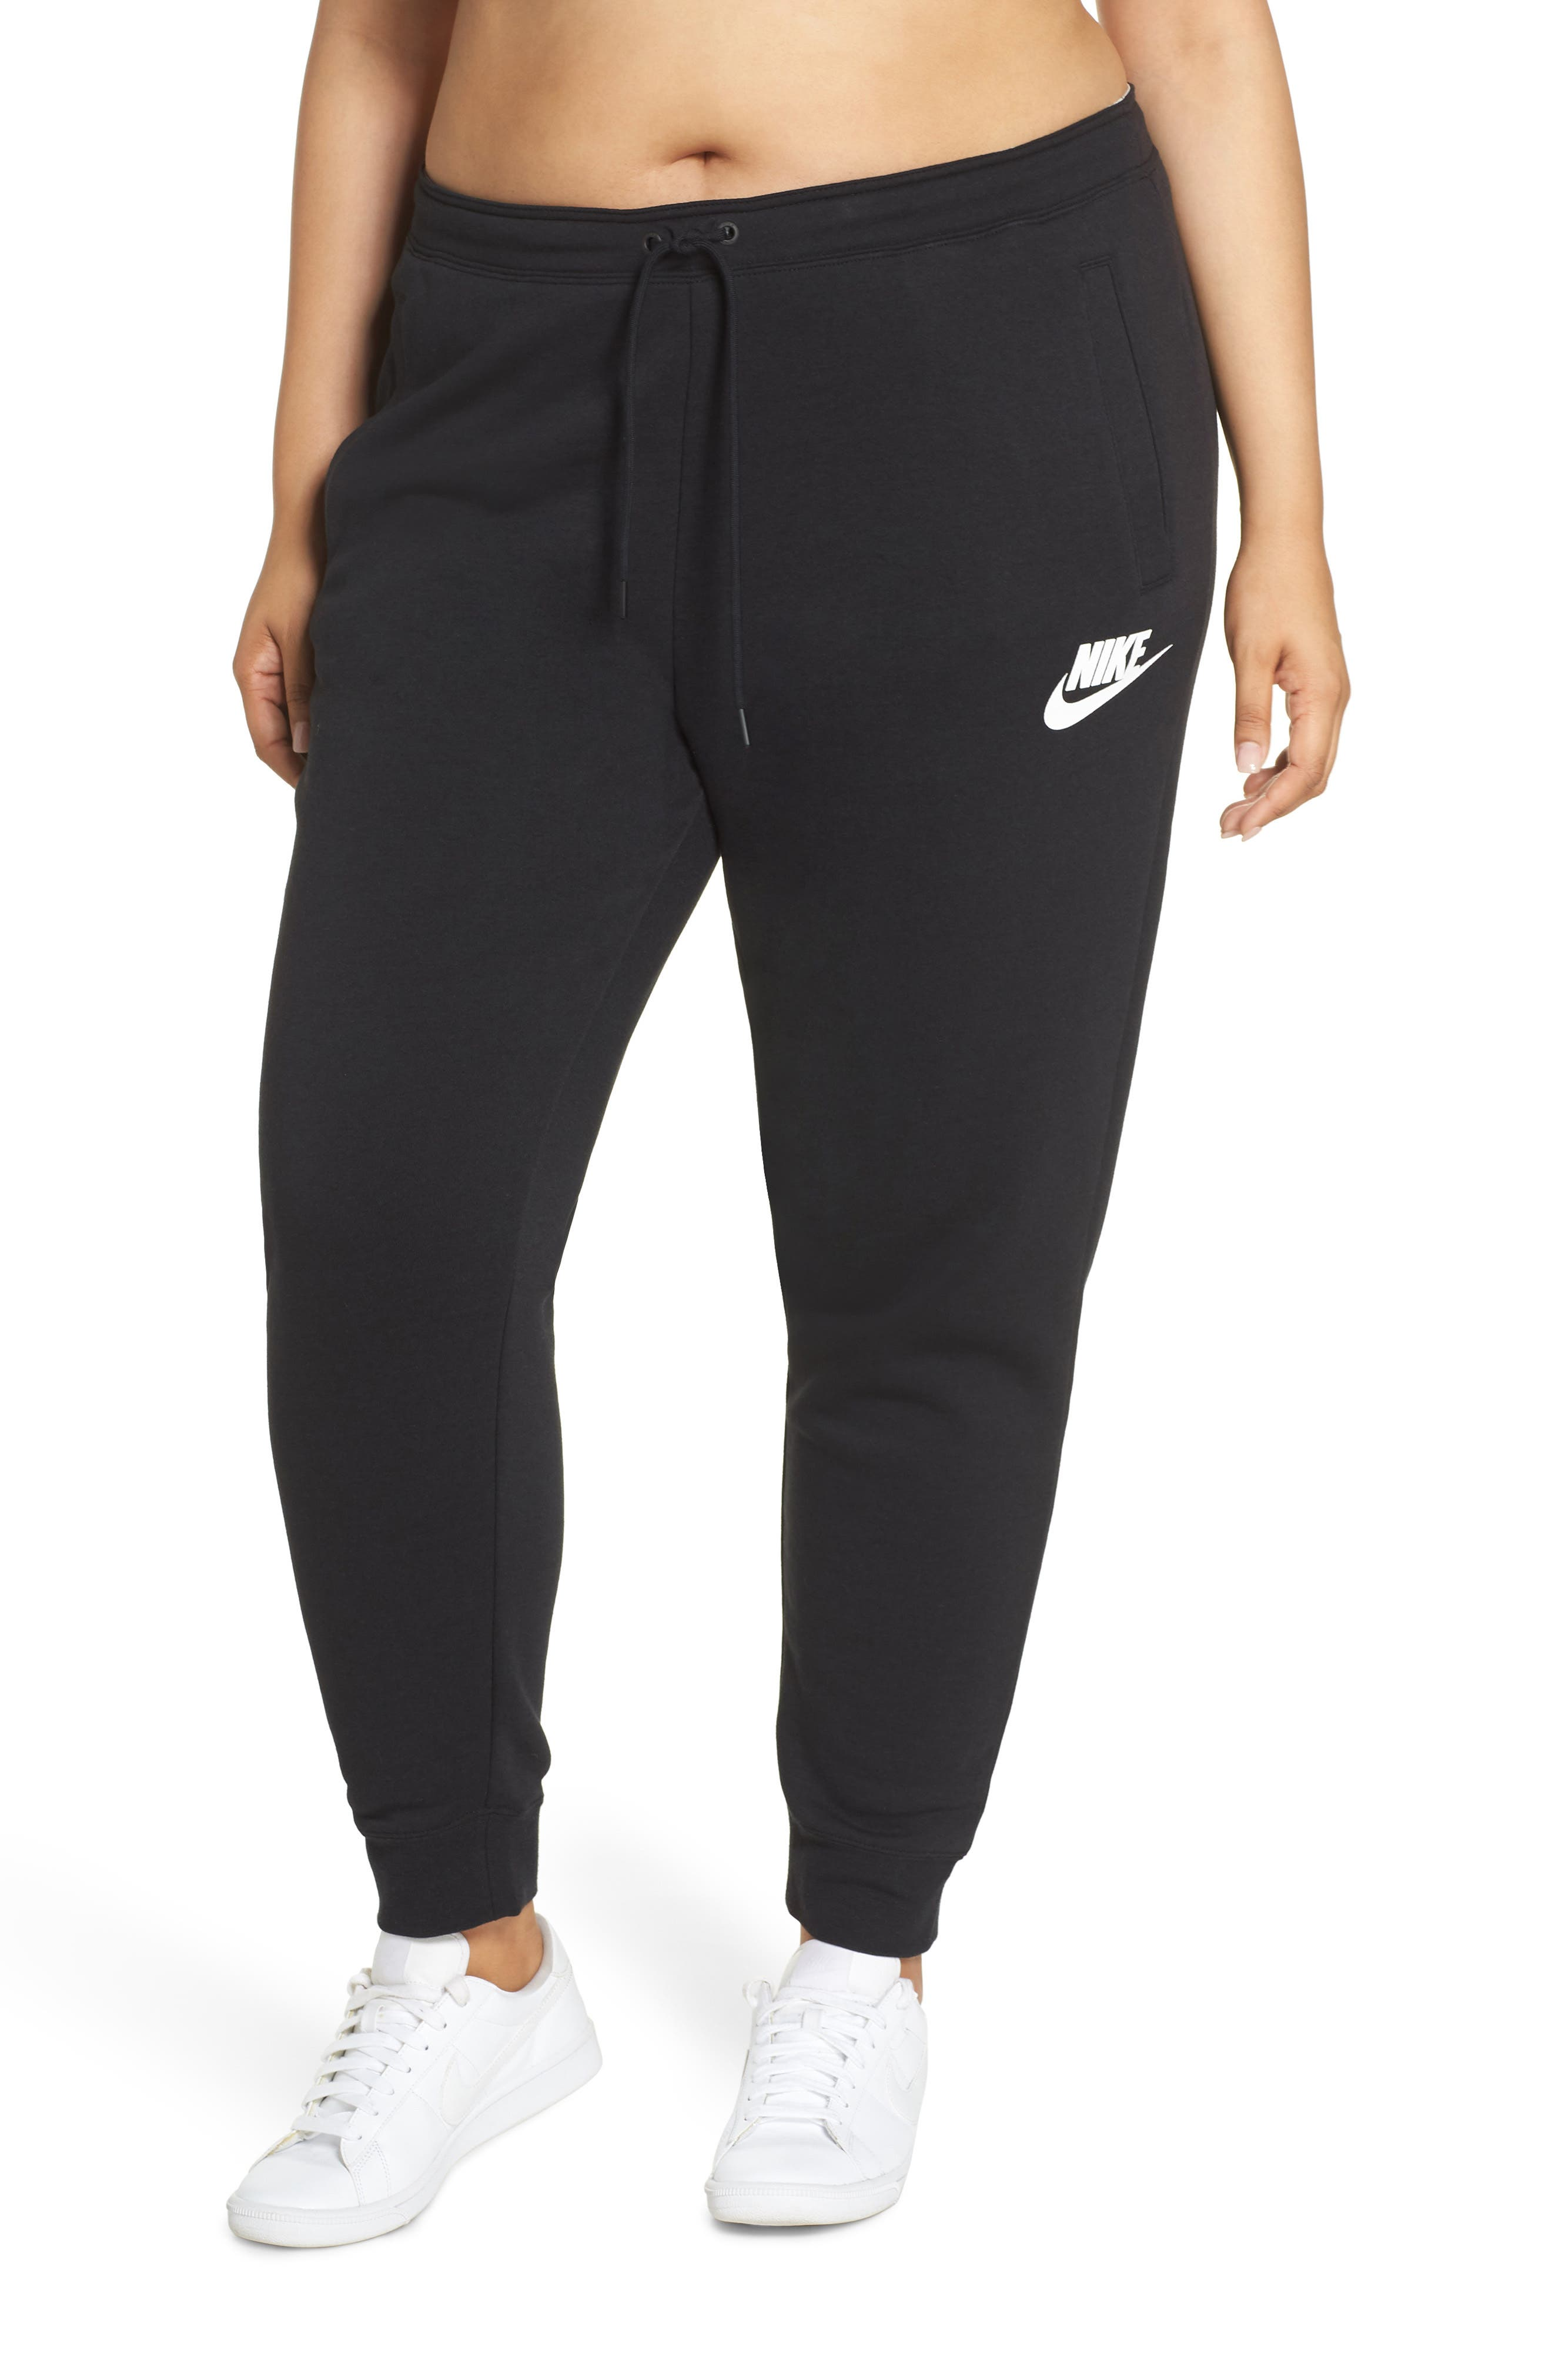 Plus Women's Nike Sportswear Rally High Rise Jogger Pants